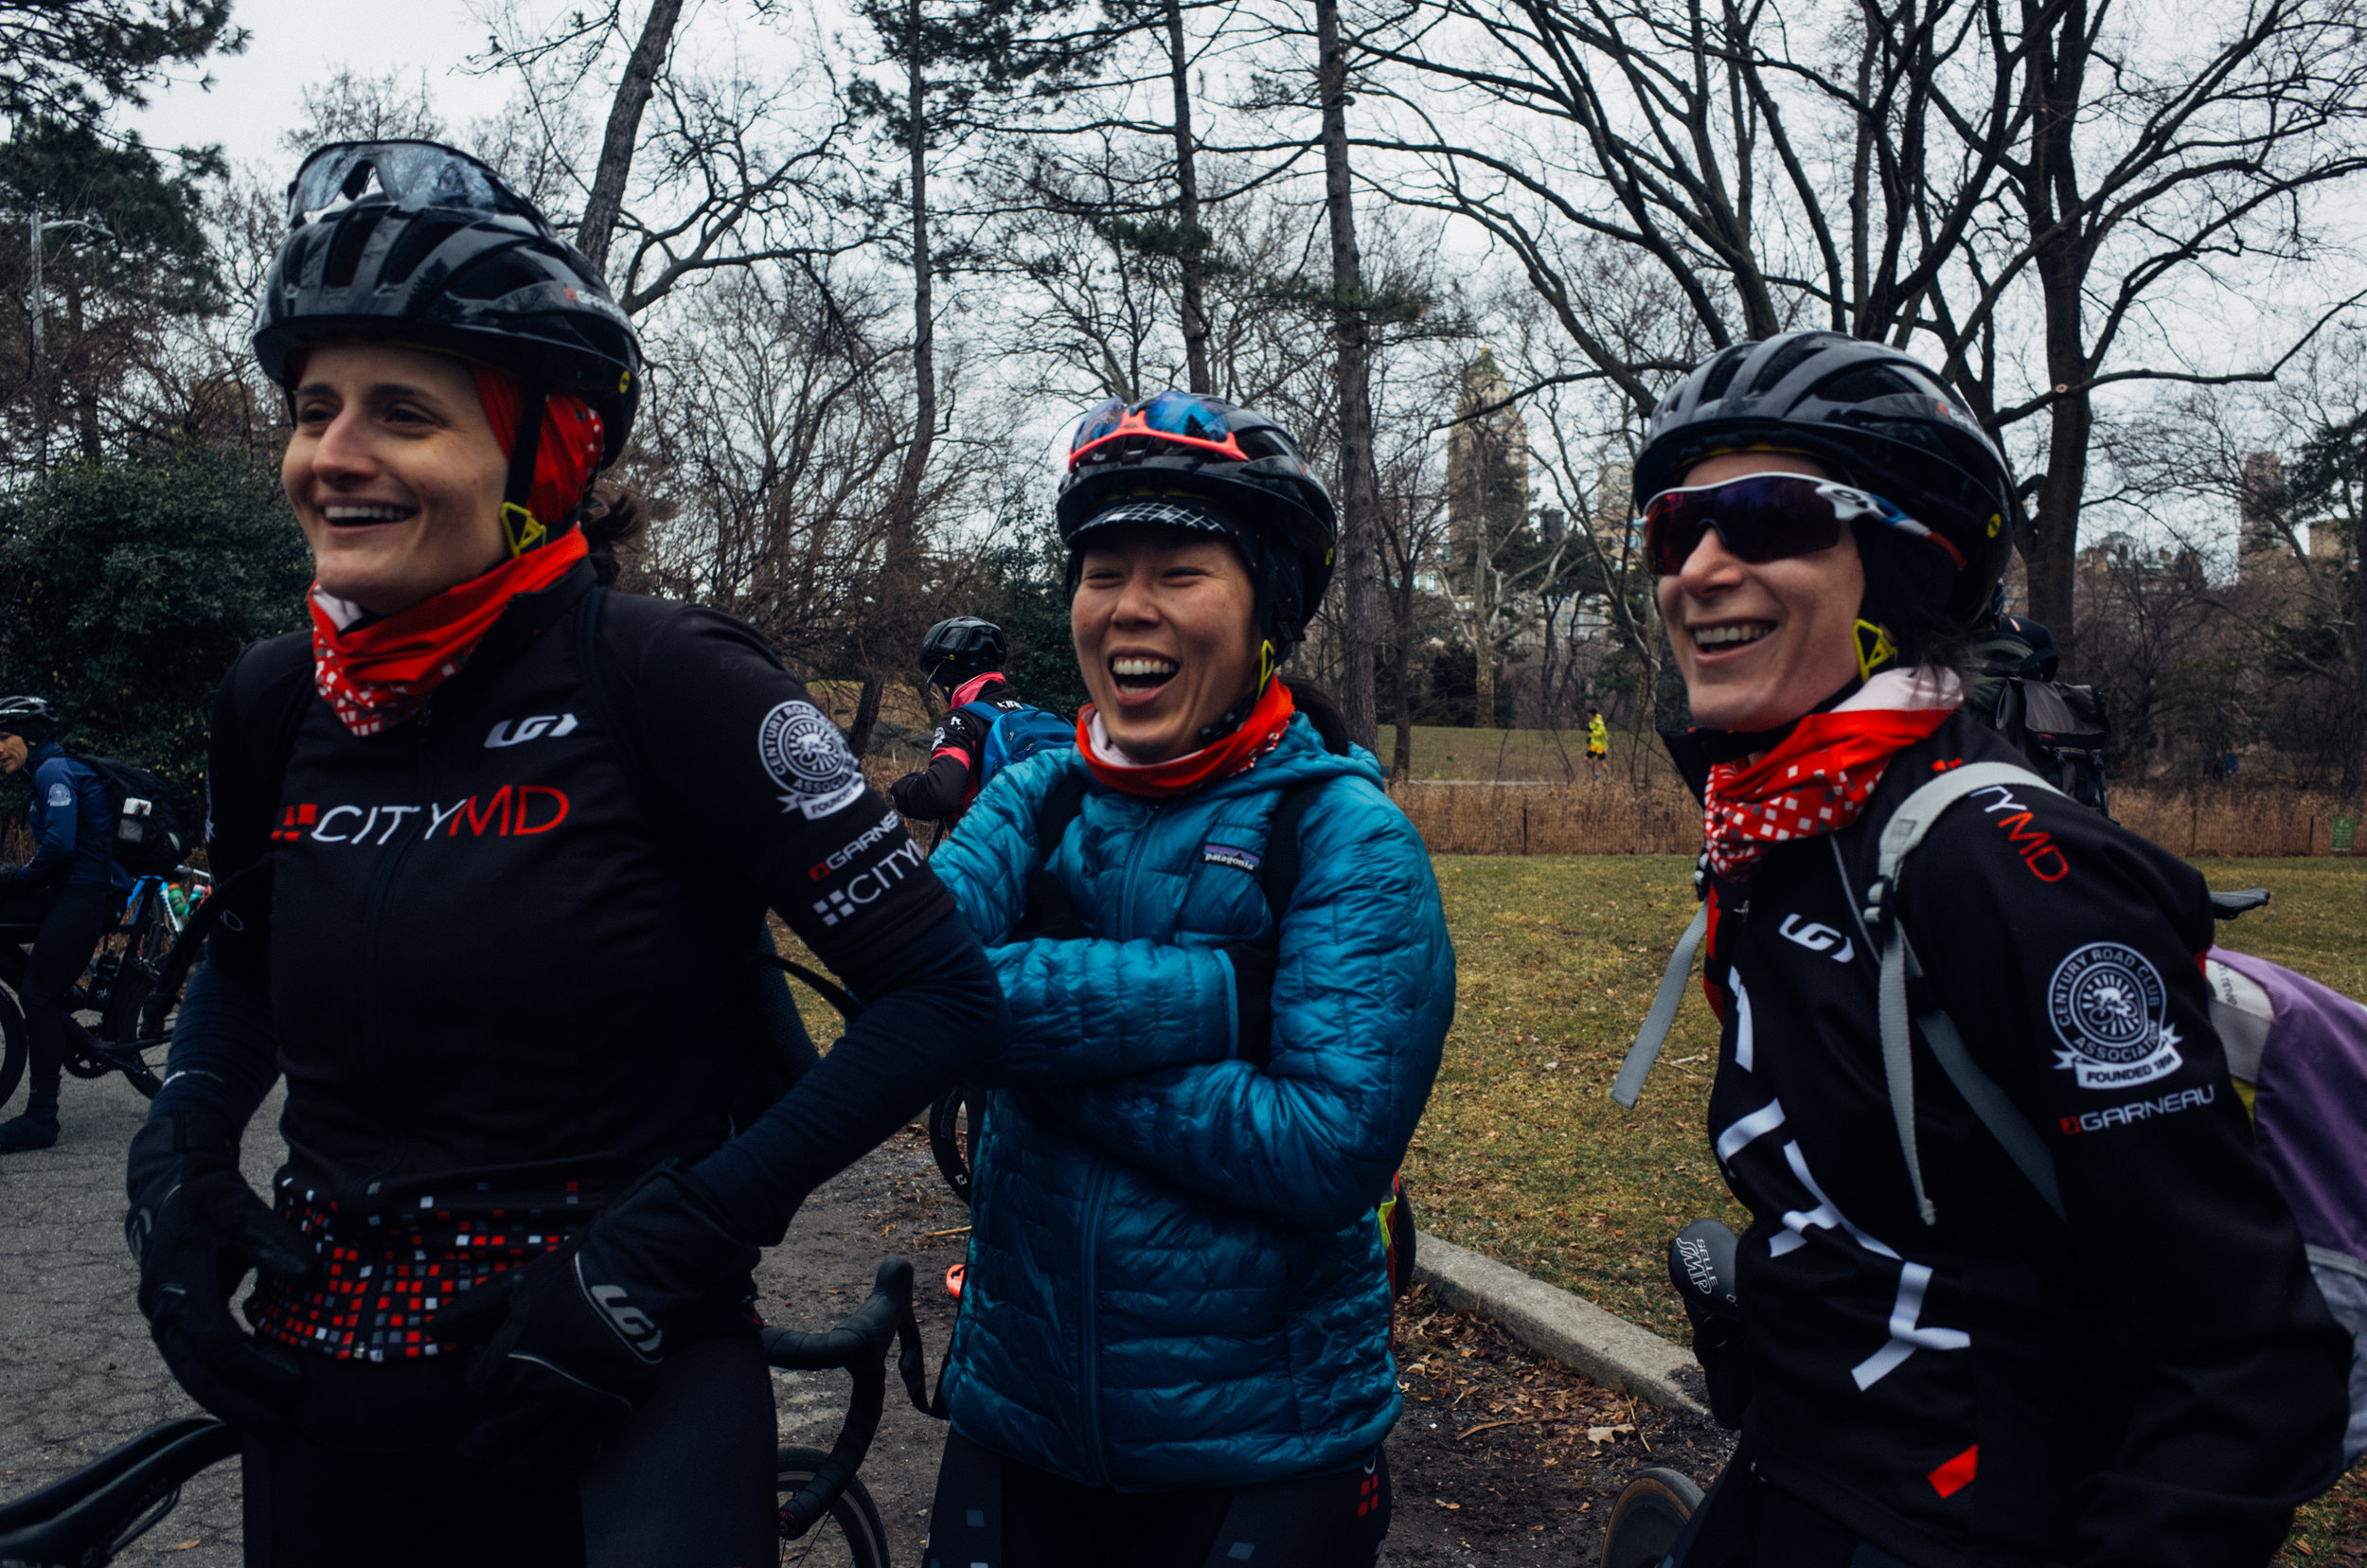 Post-race smiles and story telling with our friends from CityMD Women's Racing.